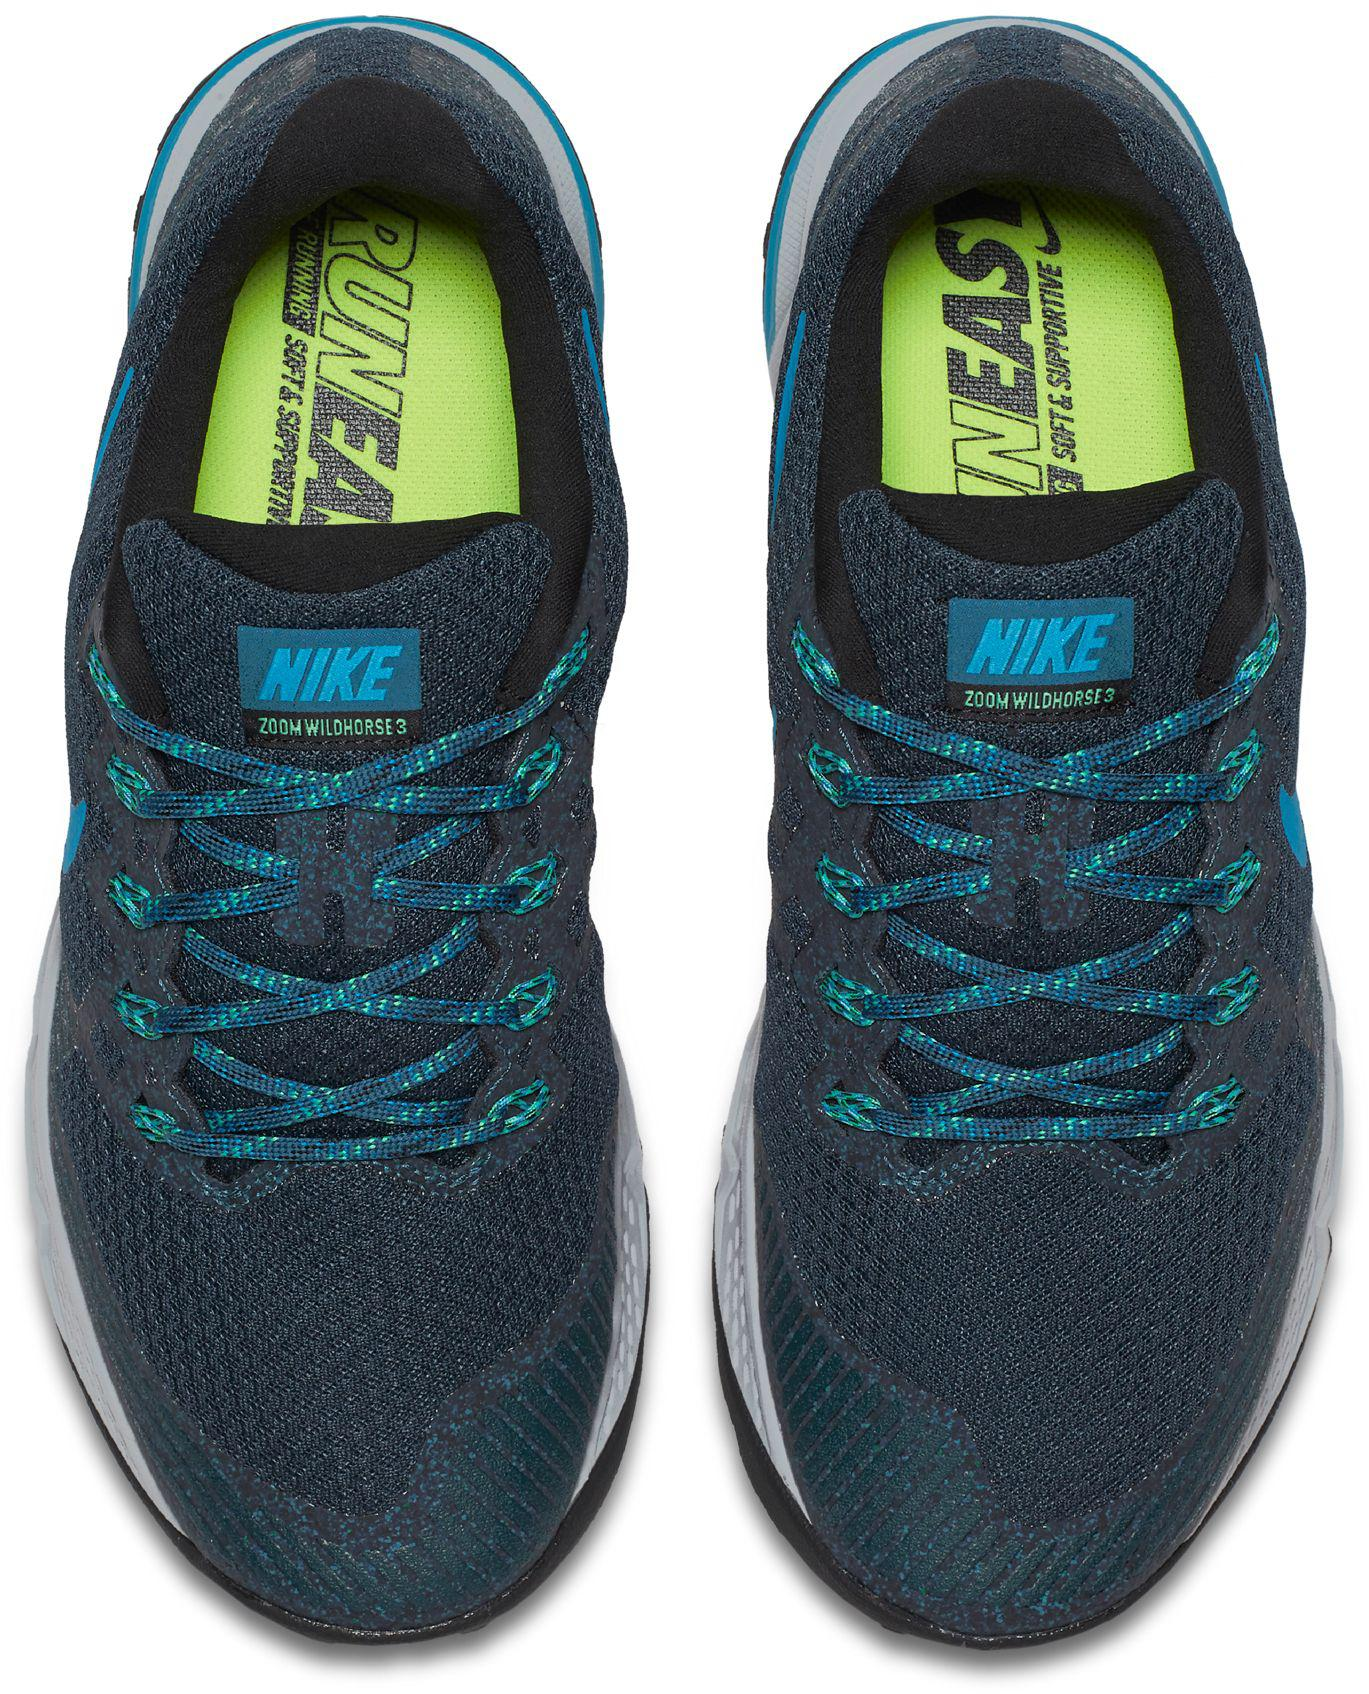 f93f79a4bbc6 Lyst - Nike Zoom Wildhorse 3 Trail Running Shoes in Blue for Men